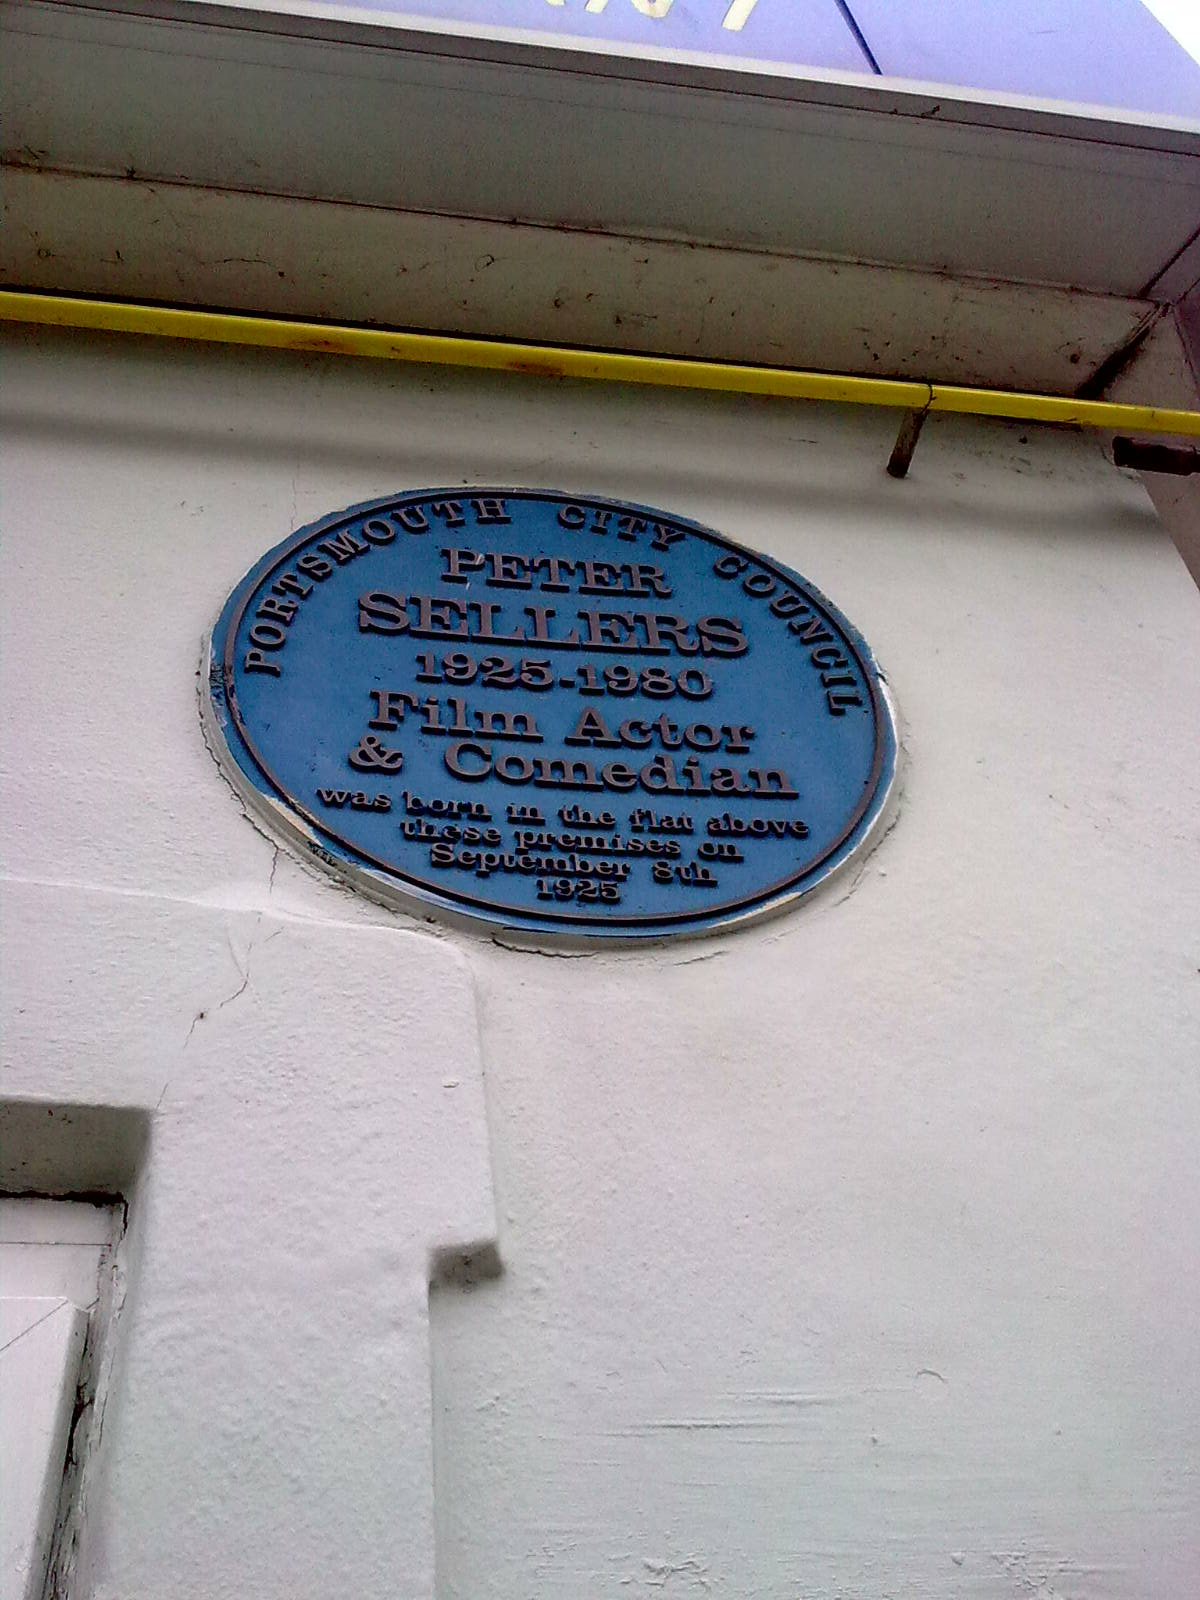 Peter Sellers' birthplace. Portsmouth.